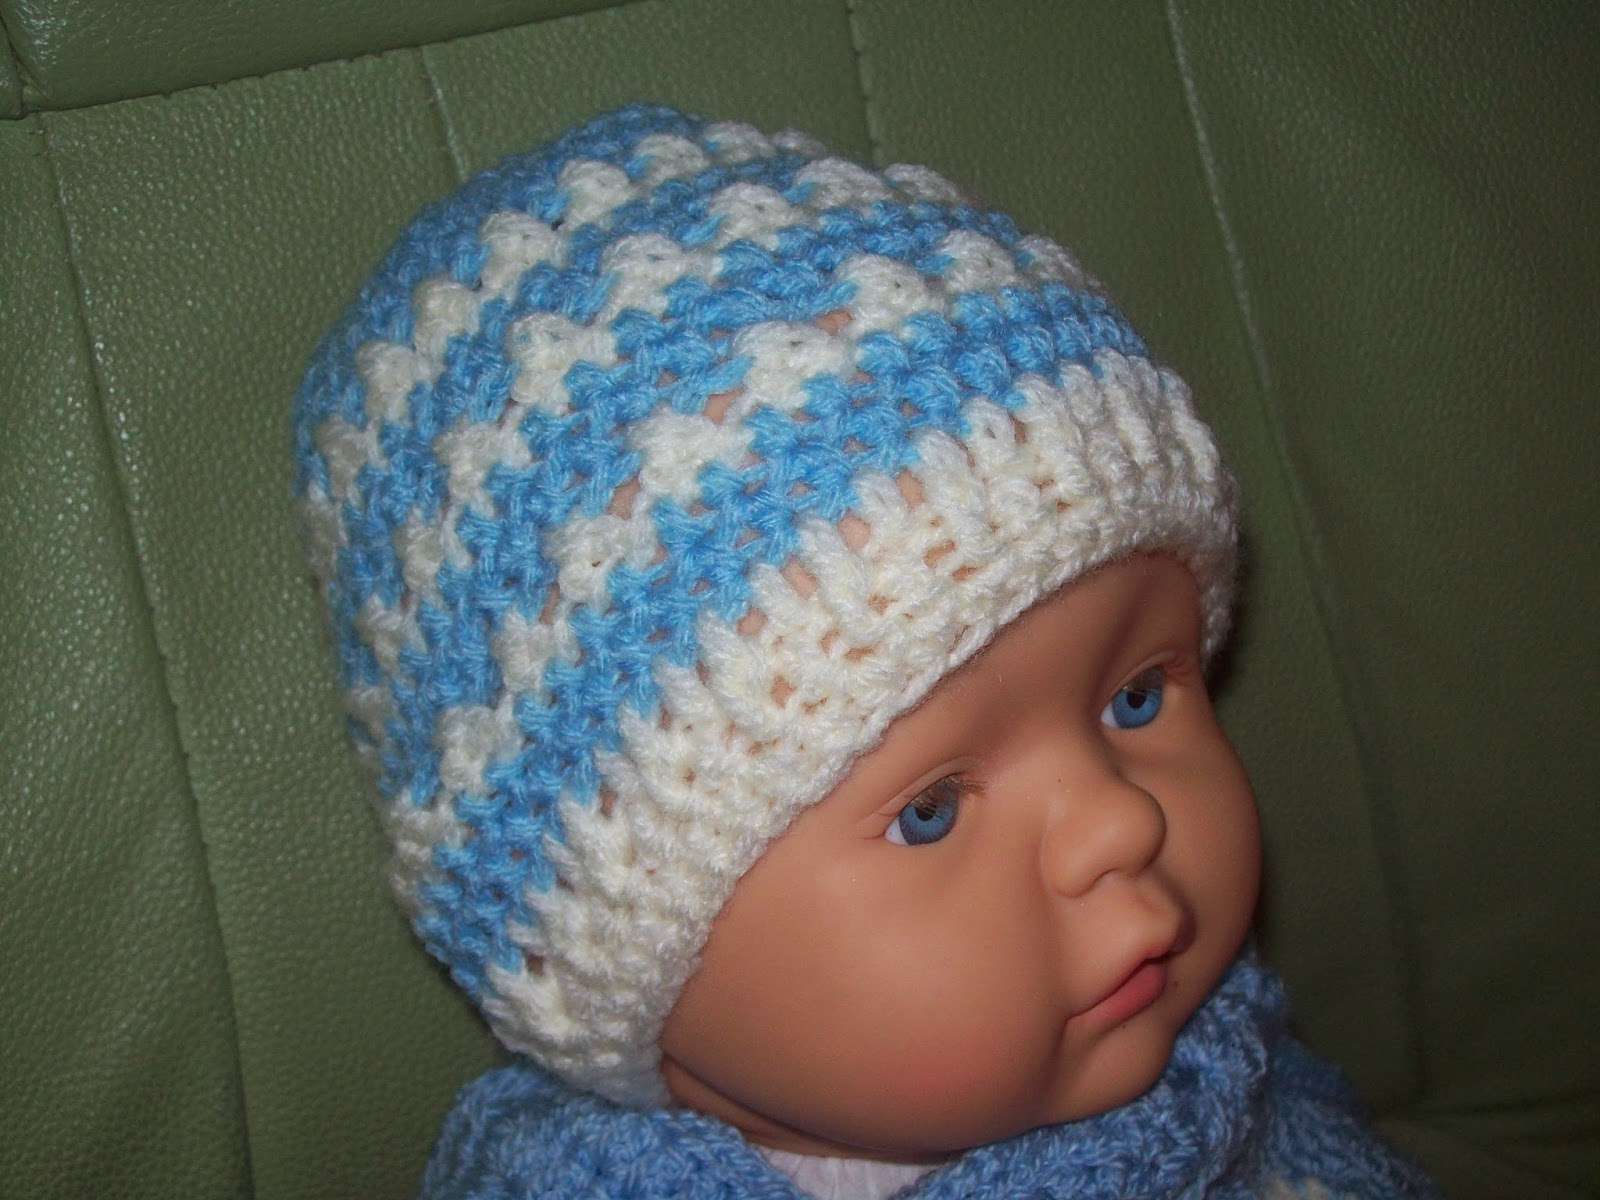 Crochet Beanie Hat Pattern For Babies : Free Crochet Patterns By Cats-Rockin-Crochet